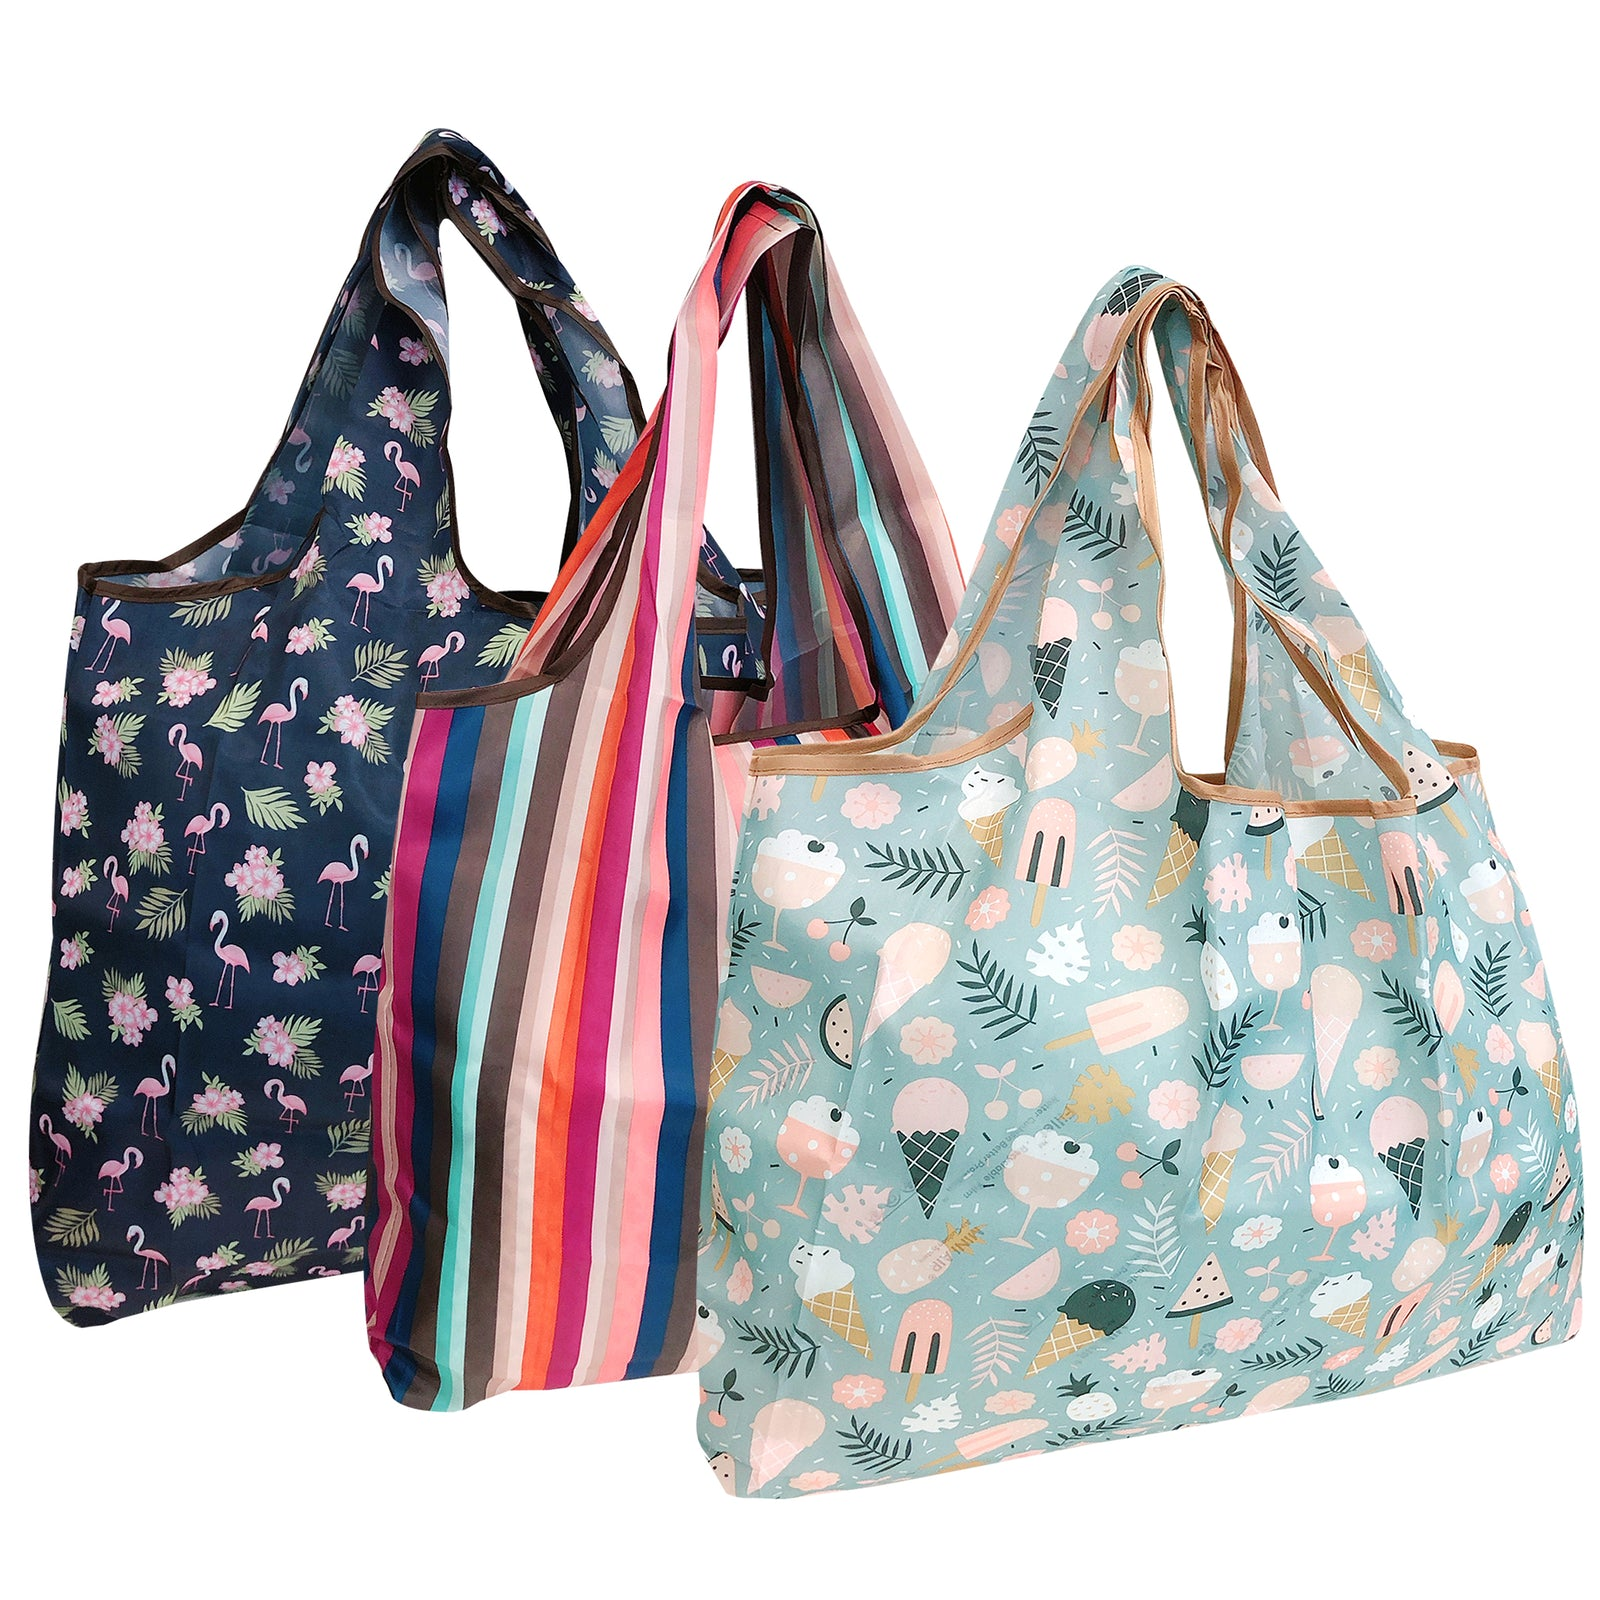 Wrapables Eco-Friendly Large Nylon Reusable Shopping Bags (Set of 3), Summer Fun